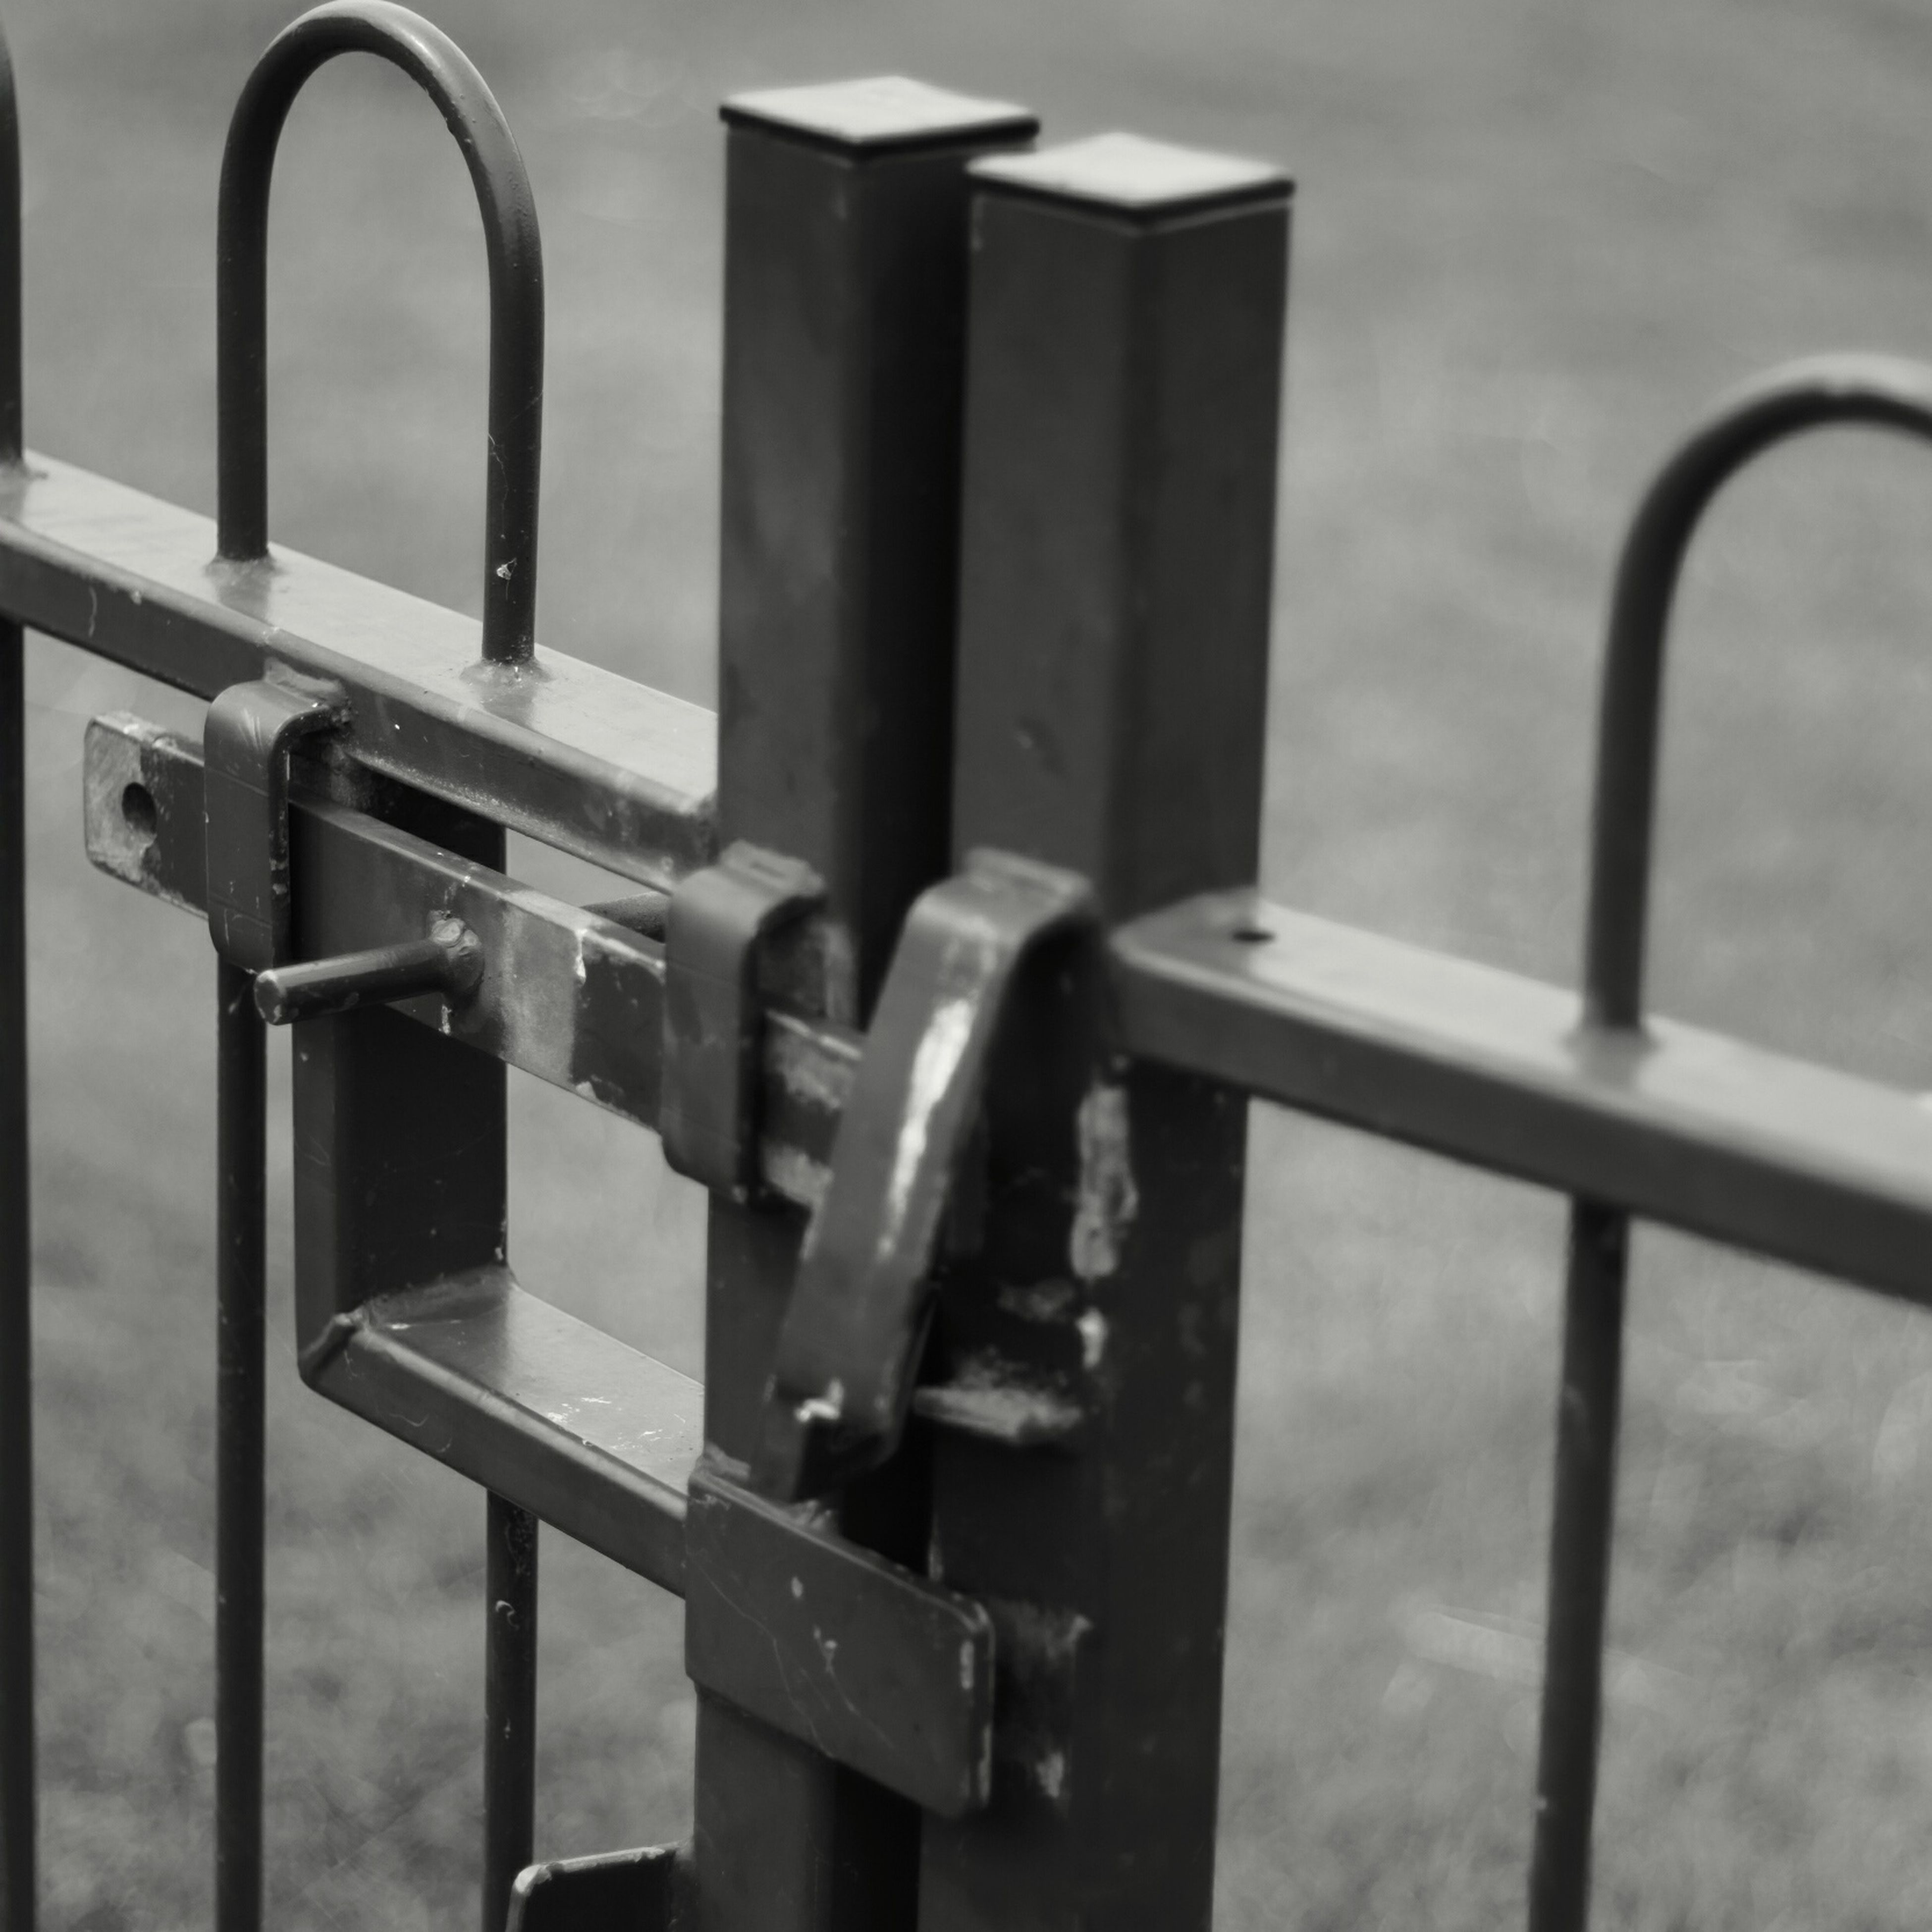 metal, metallic, close-up, focus on foreground, security, safety, protection, rusty, railing, day, chain, no people, fence, iron - metal, lock, old, gate, padlock, connection, outdoors